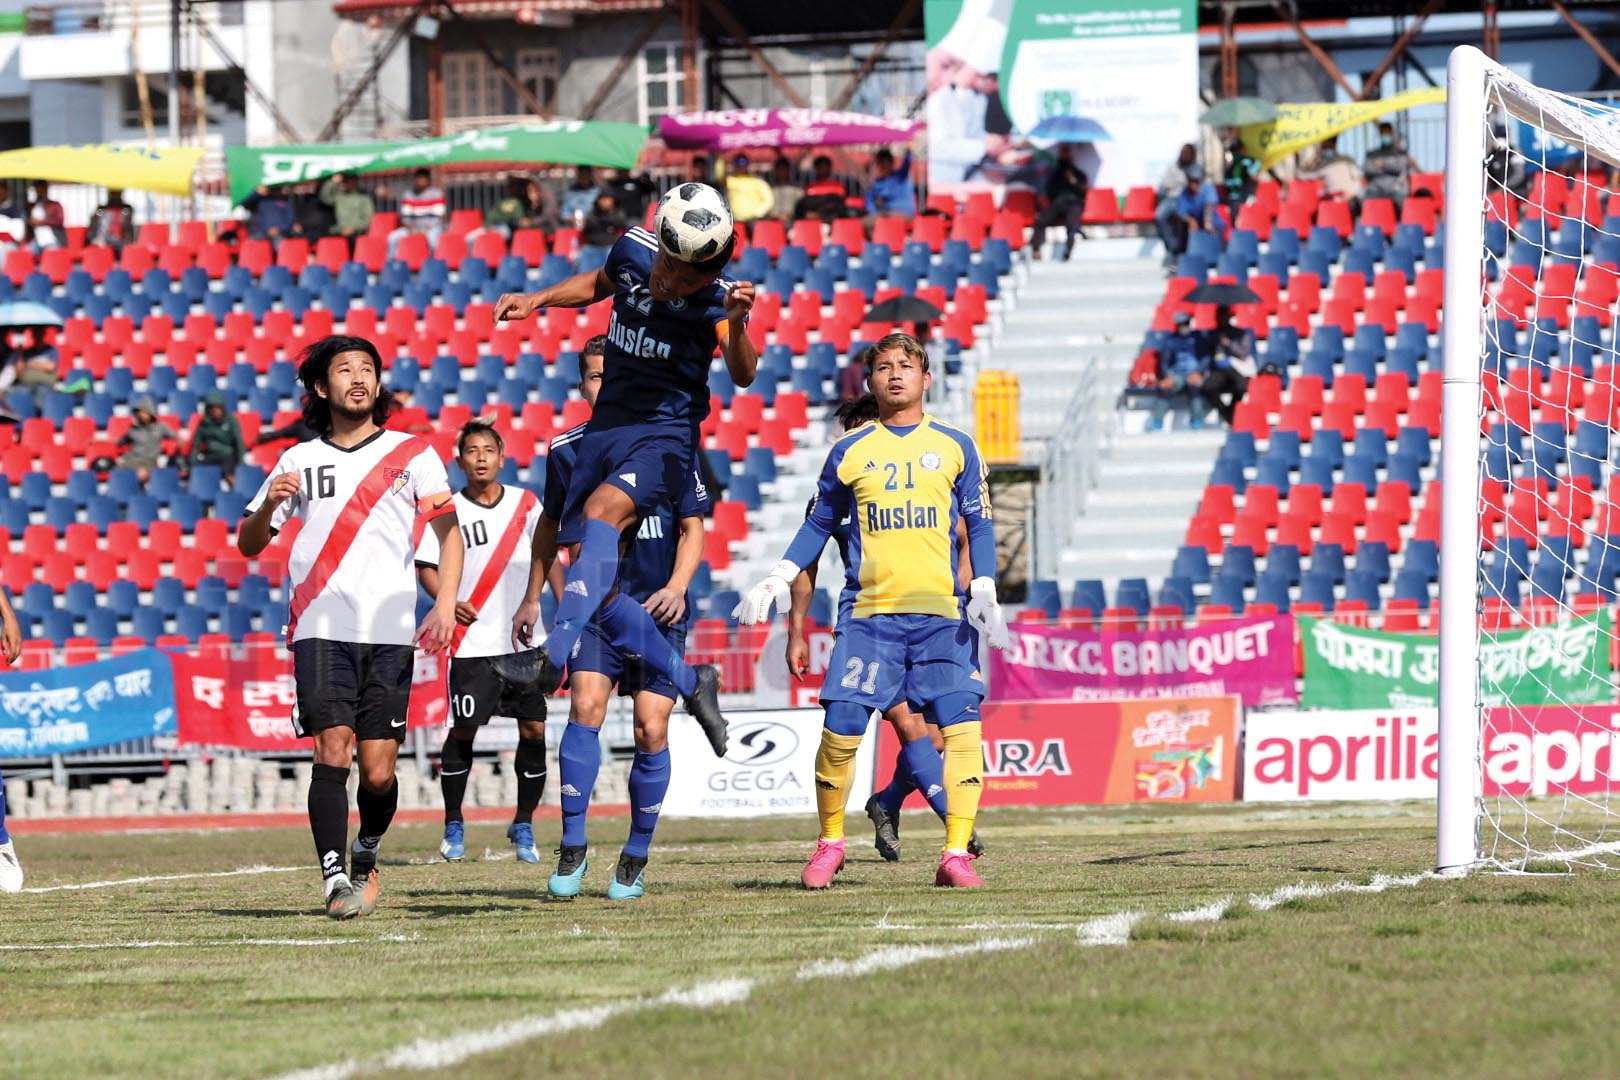 Action in the match between Gangtok Football Club (left) and Ruslan Three Star Club during the 18th Aaha-Rara Gold Cup Football Tournament at the Pokhara Stadium in Kaski on Monday. Photo courtesy: Sudarshan Ranjit